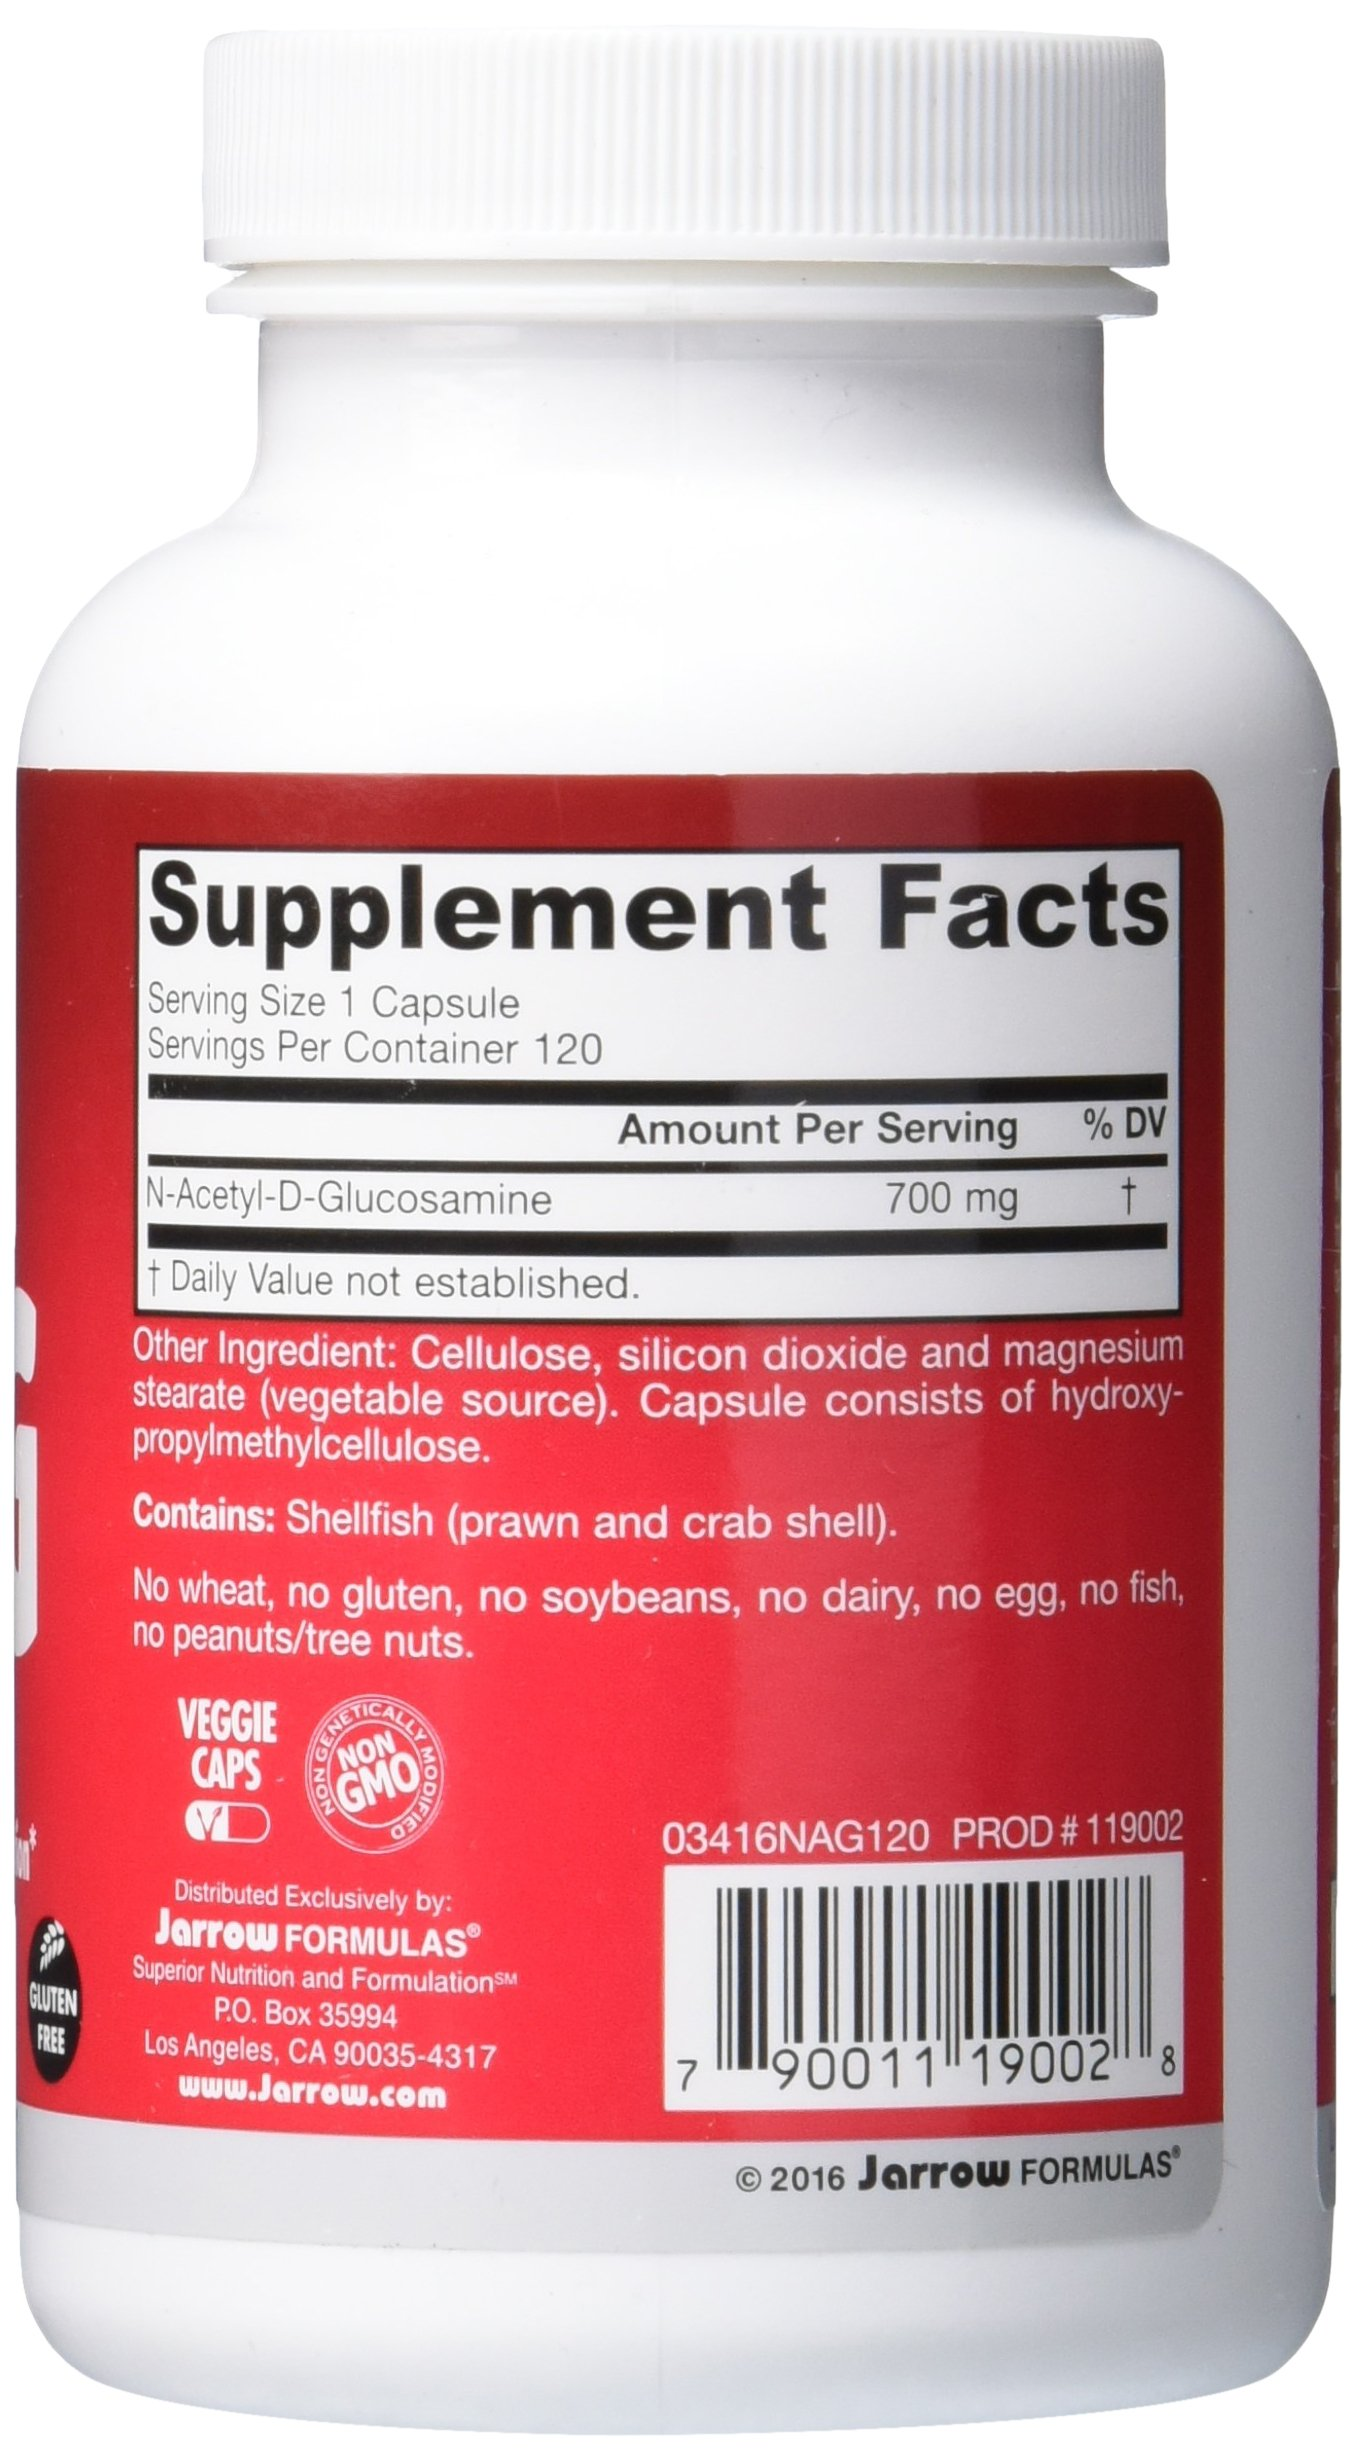 Jarrow Formulas N-A-G 700 mg, Supports Joints & Intestinal Function, 120 Veggie Caps by Jarrow (Image #5)